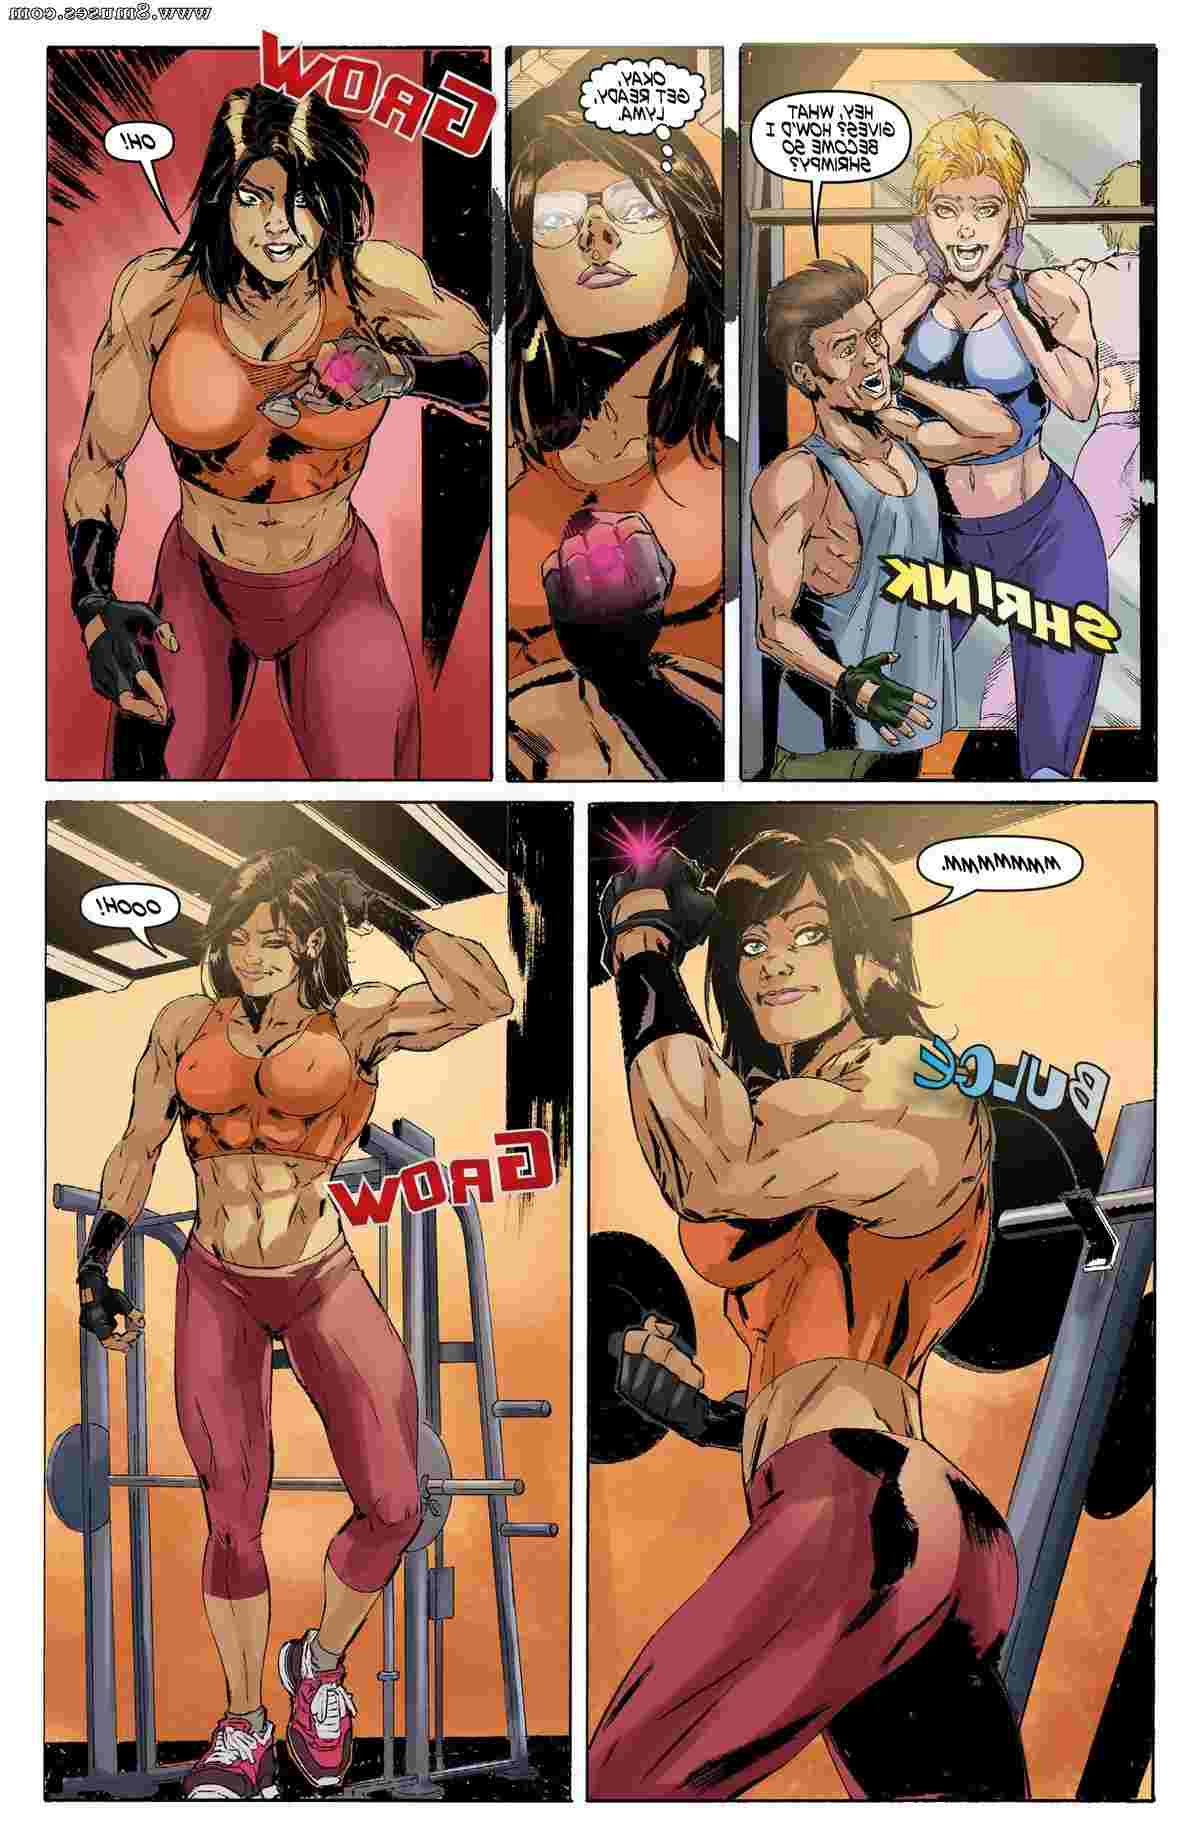 MuscleFan-Comics/Leveling-The-Field Leveling_The_Field__8muses_-_Sex_and_Porn_Comics_14.jpg